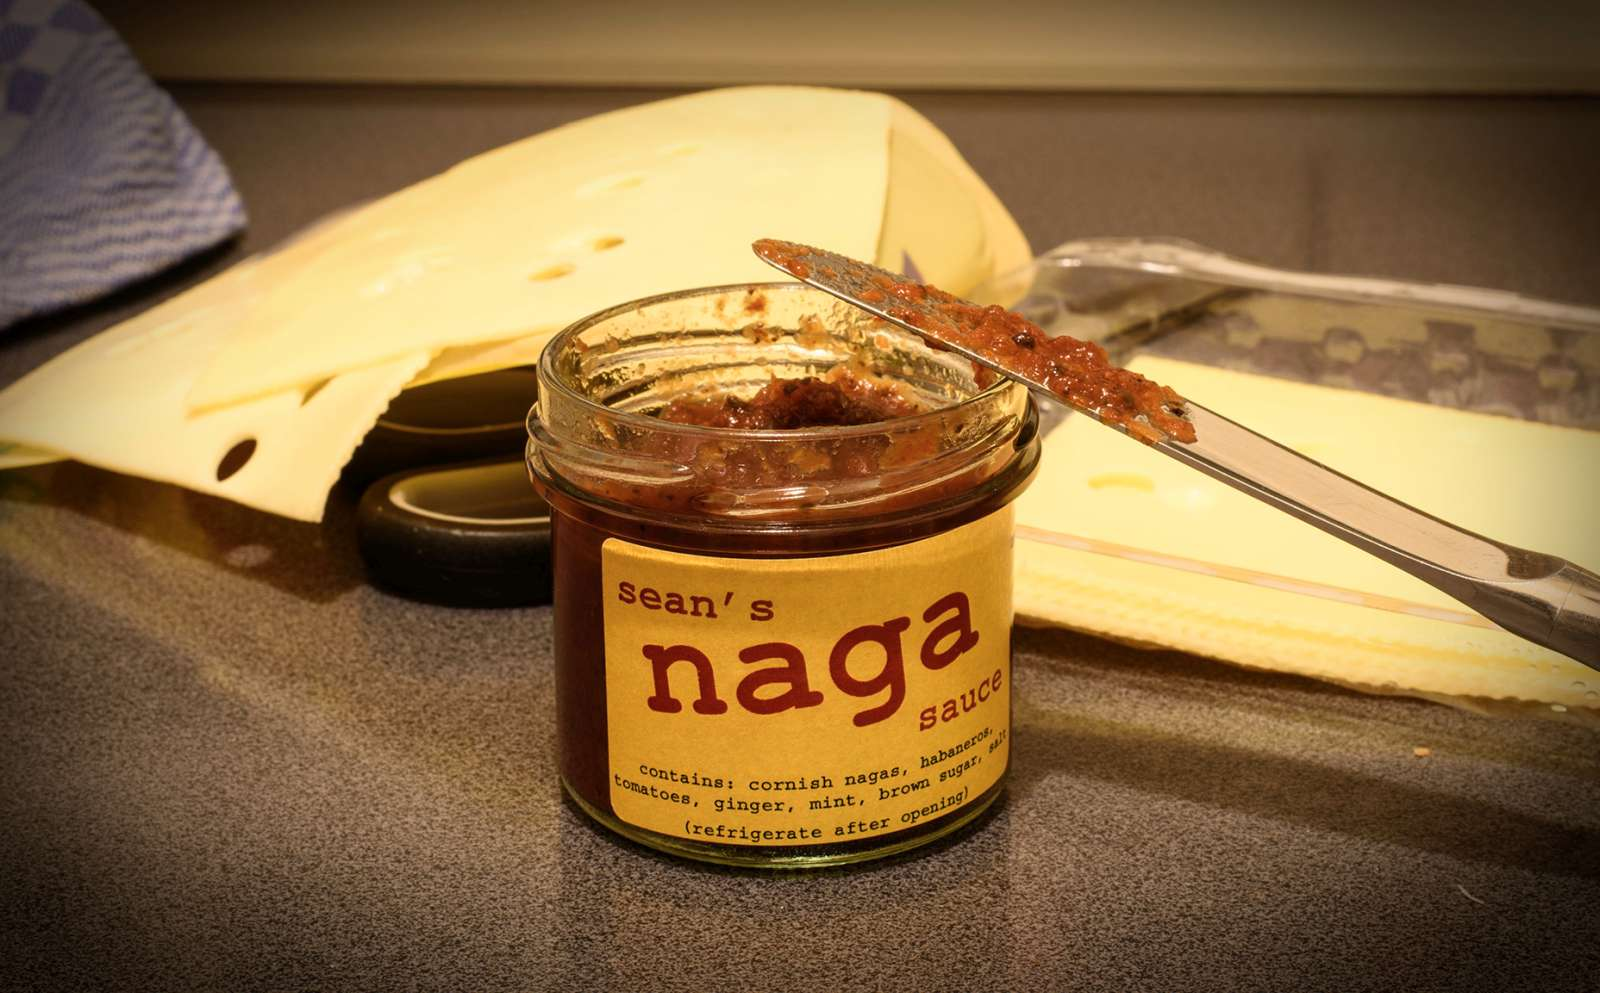 My last jar of Naga sauce. Intensively hot.